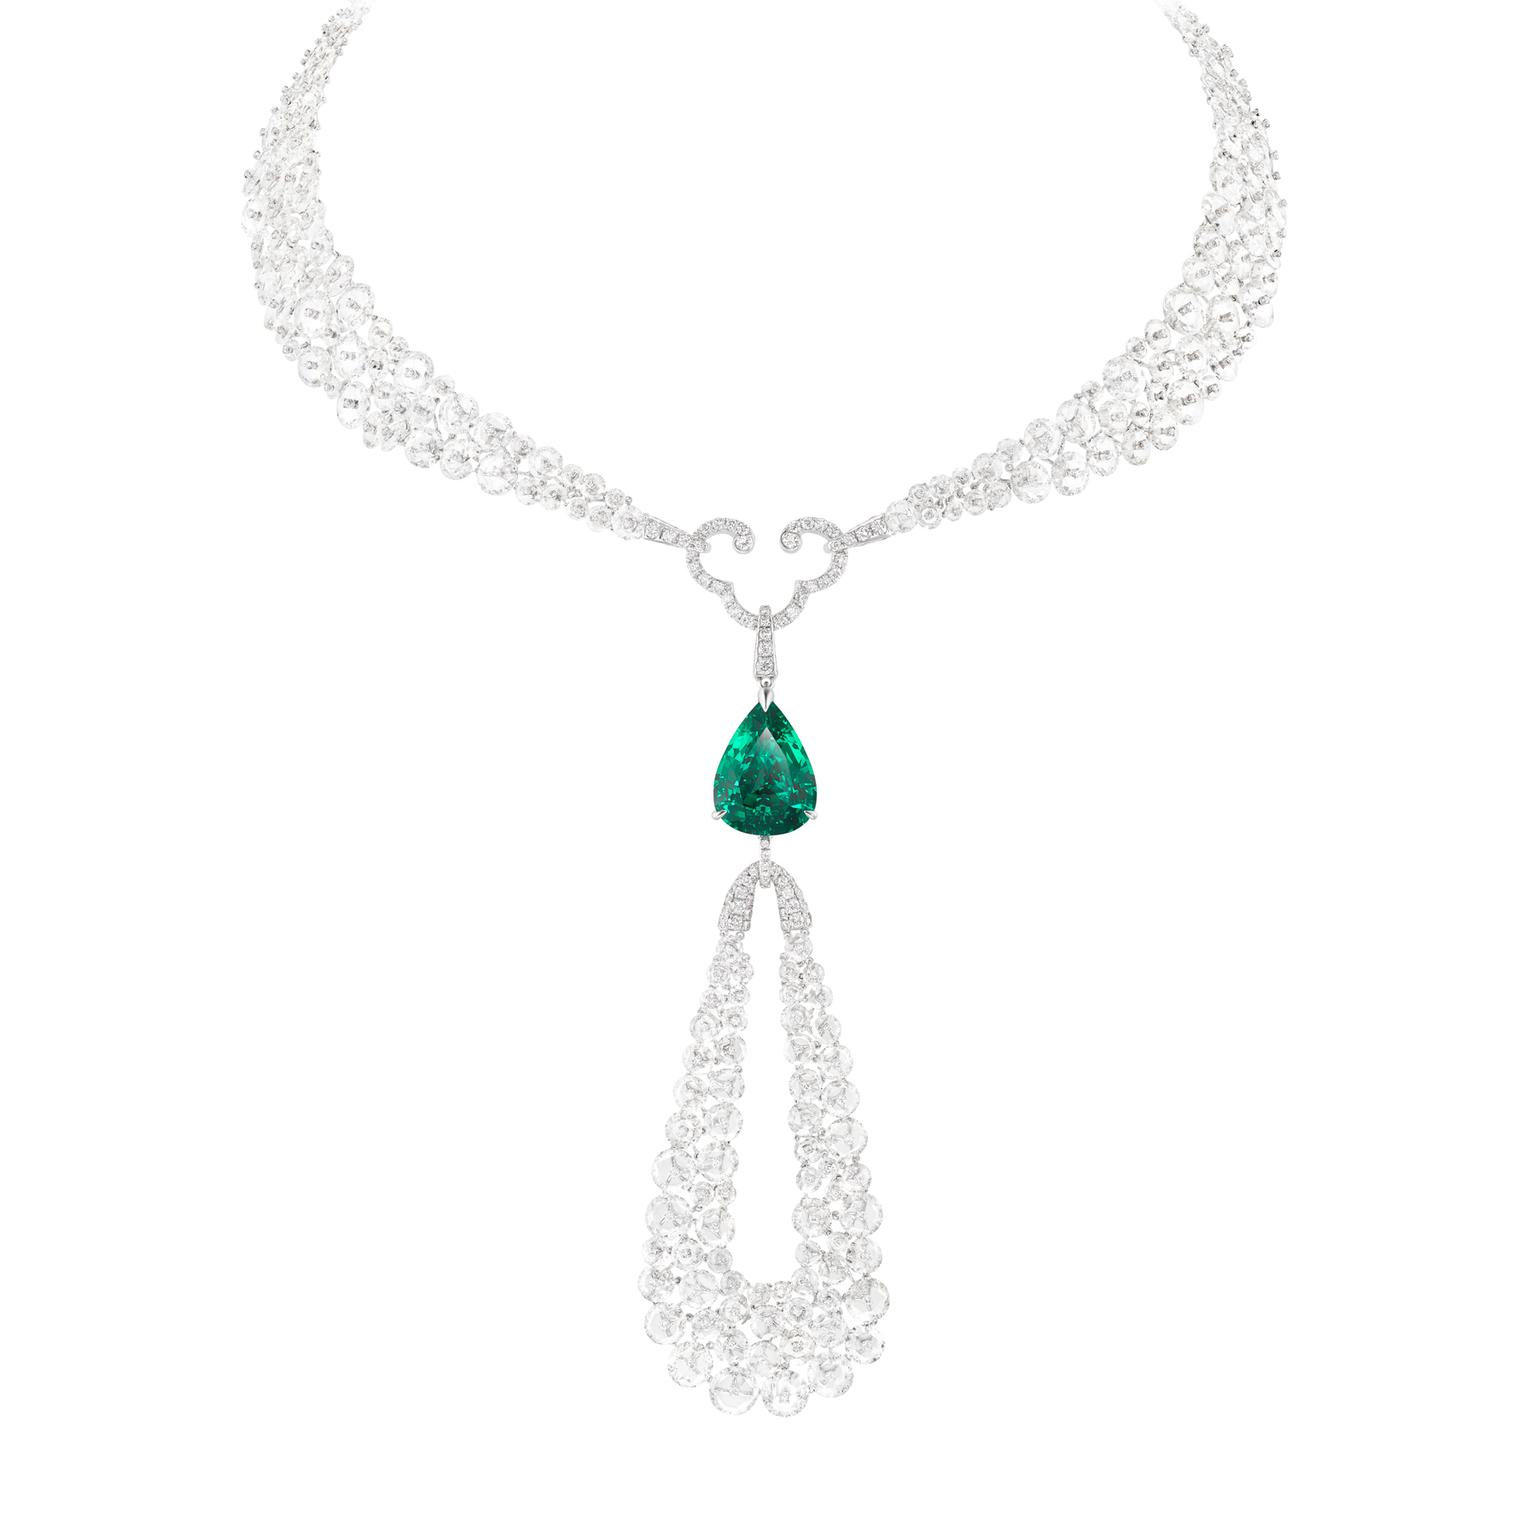 Boghossian diamond and emerald necklace